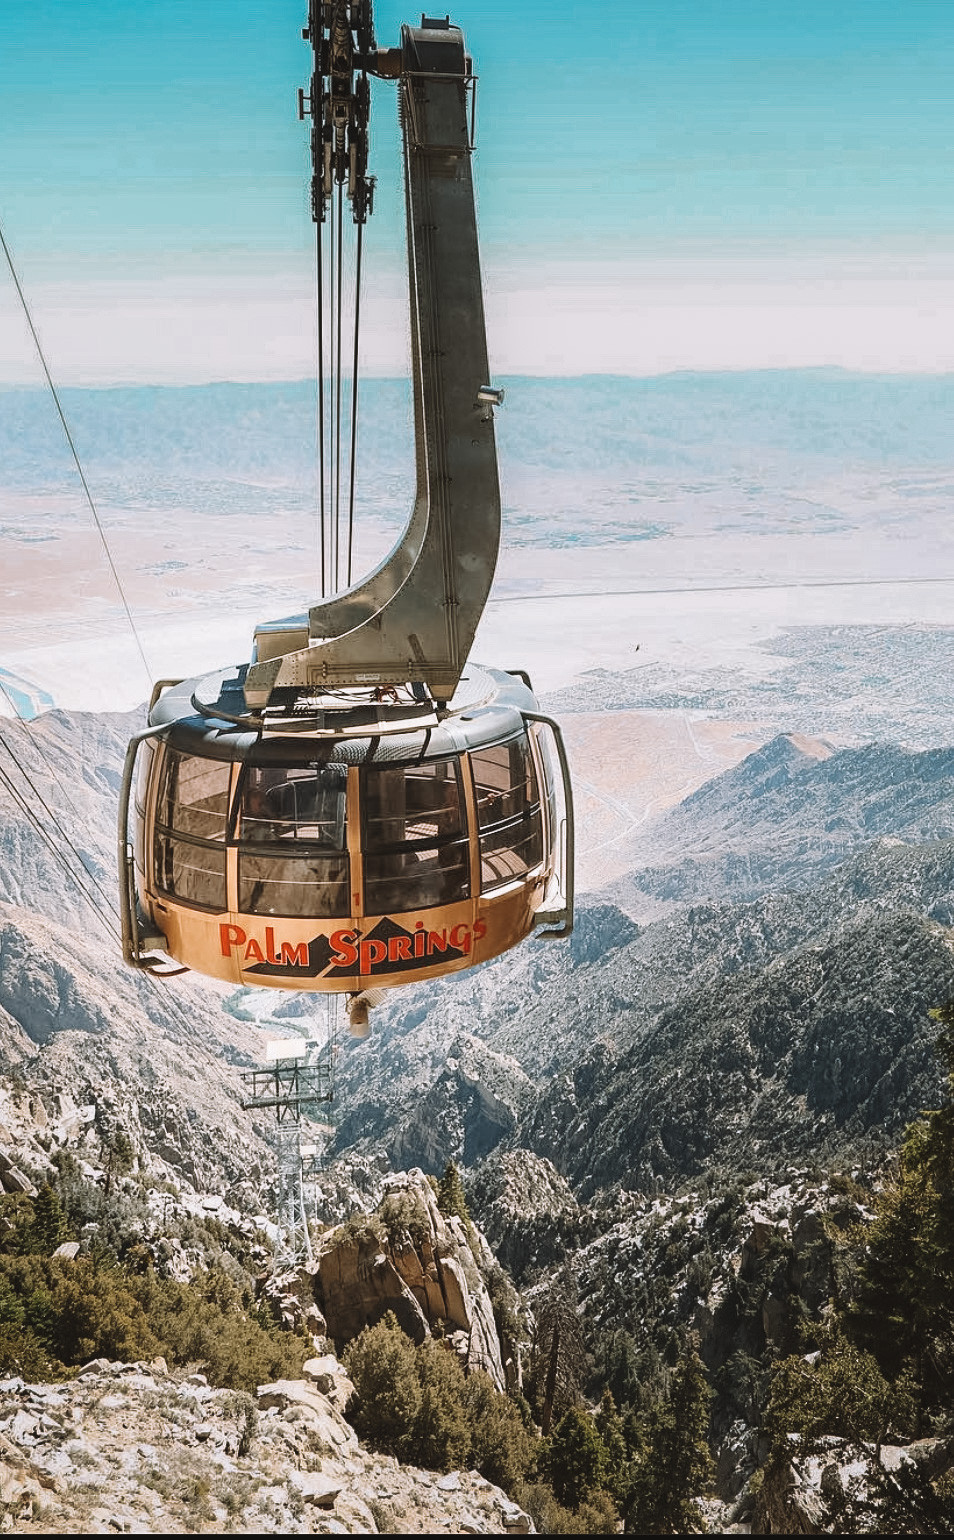 Palm Springs Tram coming up the mountain